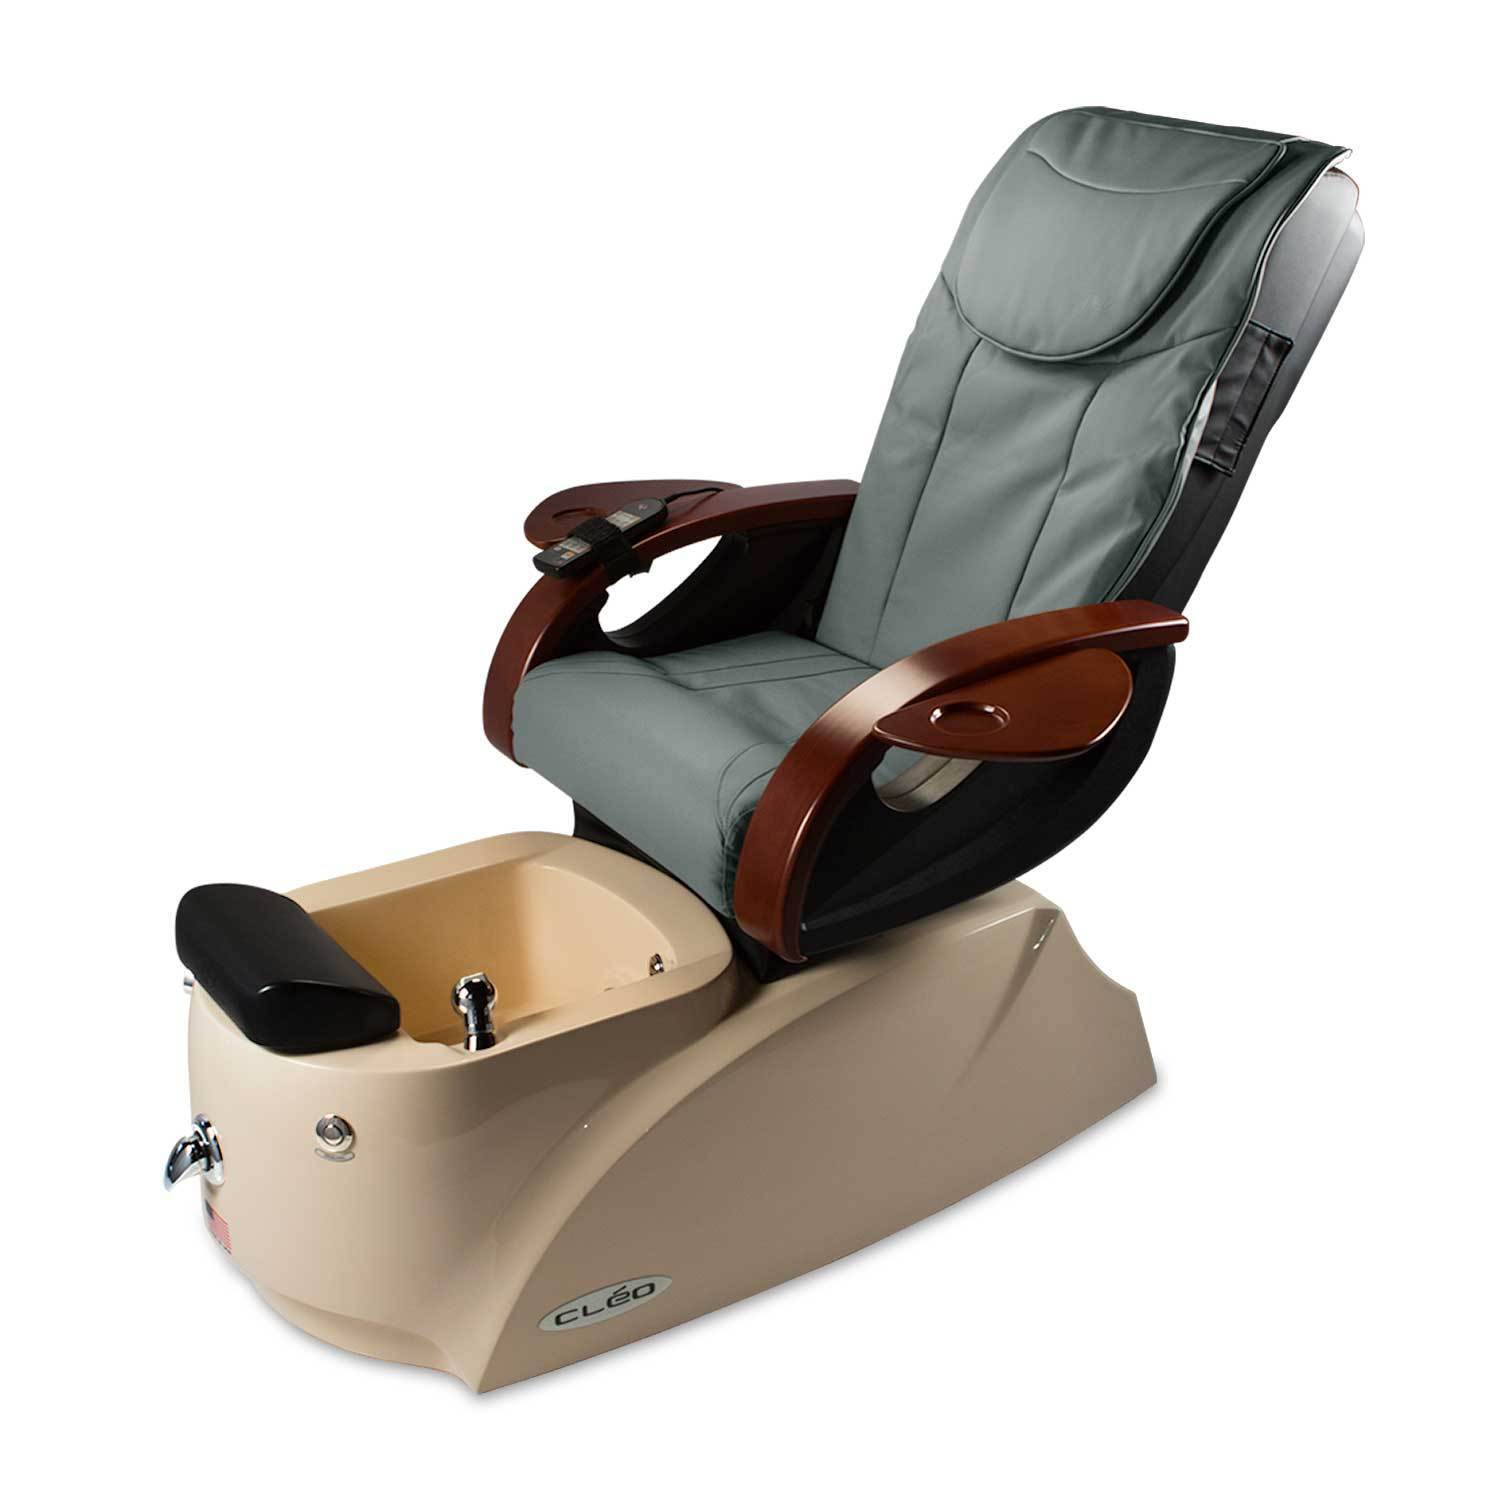 Salon equipment pedicure pedi chair unit spa foot cleo for Abc salon equipment in clearwater fl